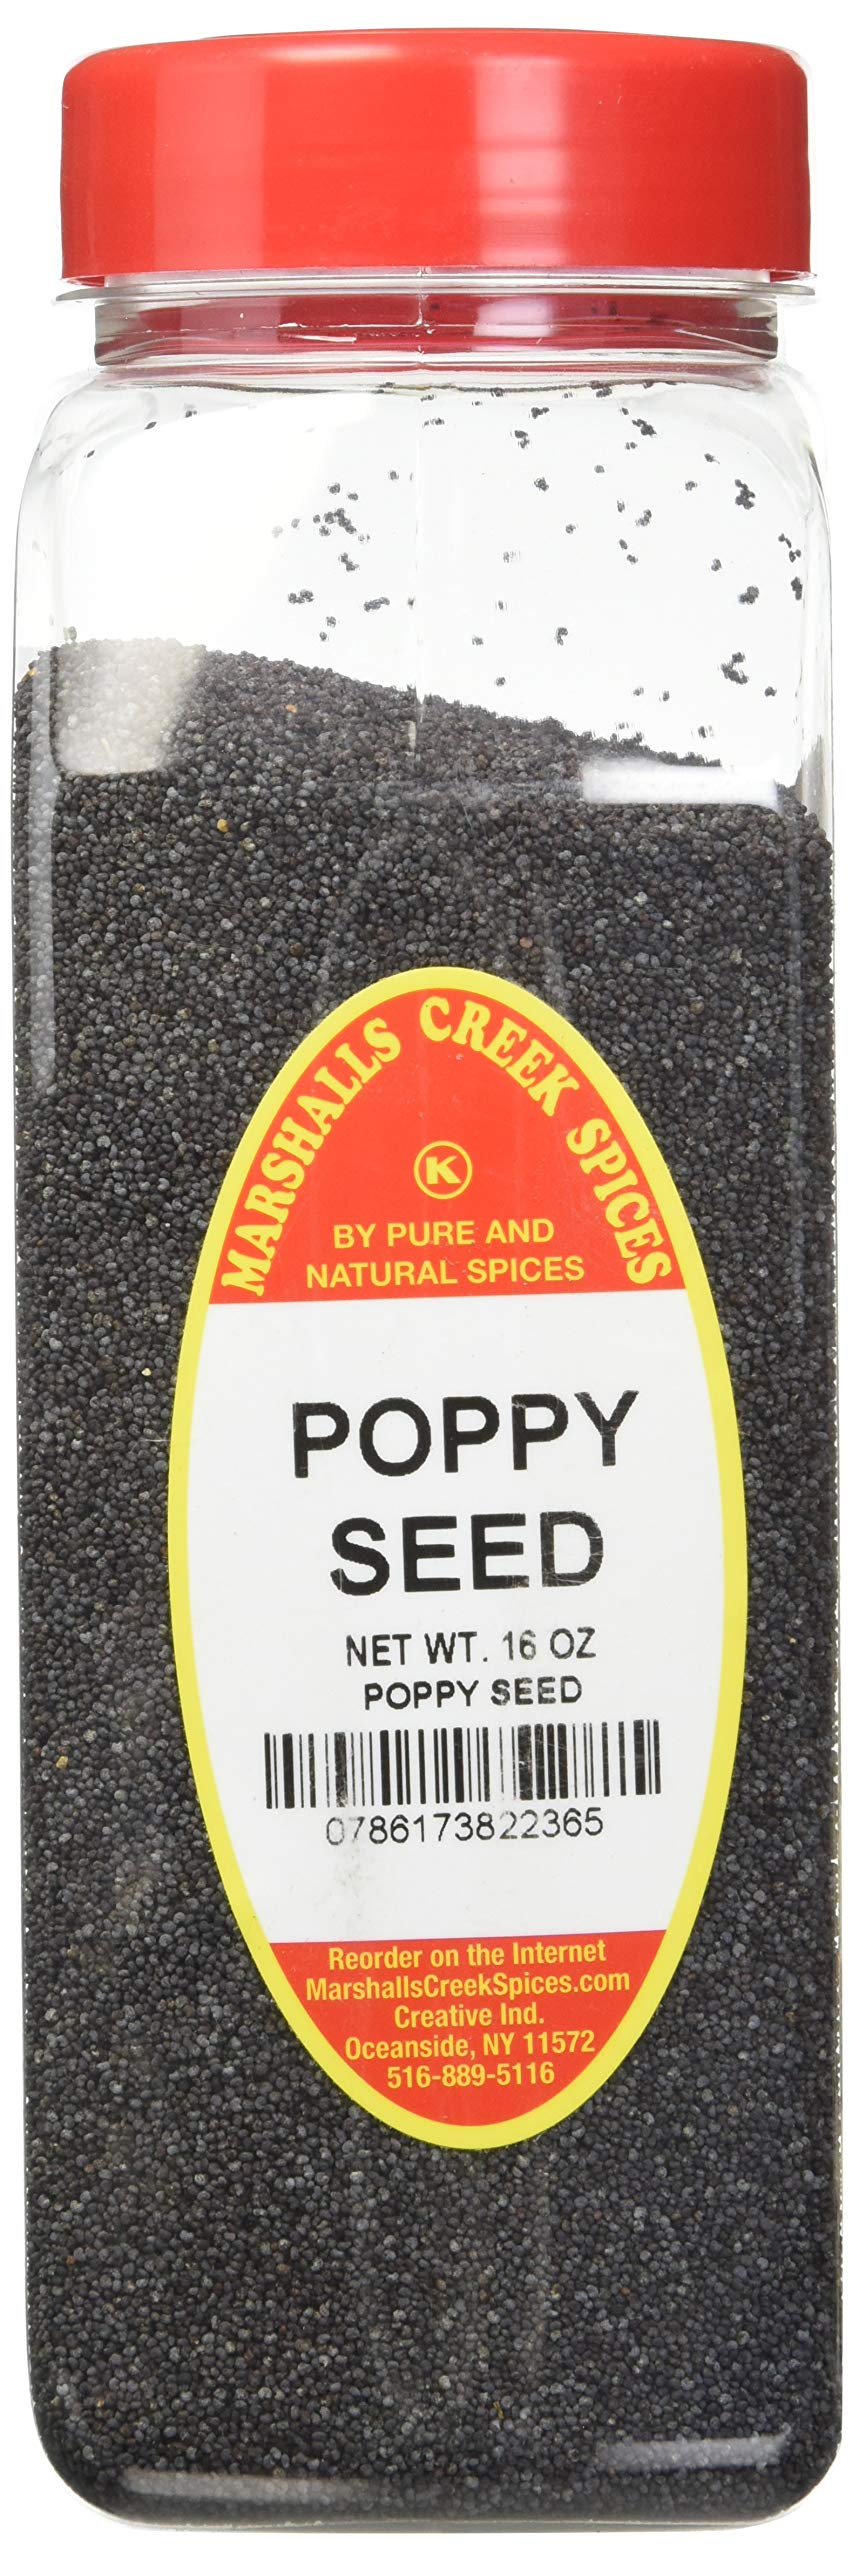 Marshalls Creek Spices Seasoning, Poppy Seed, XL Size, 16 Ounce